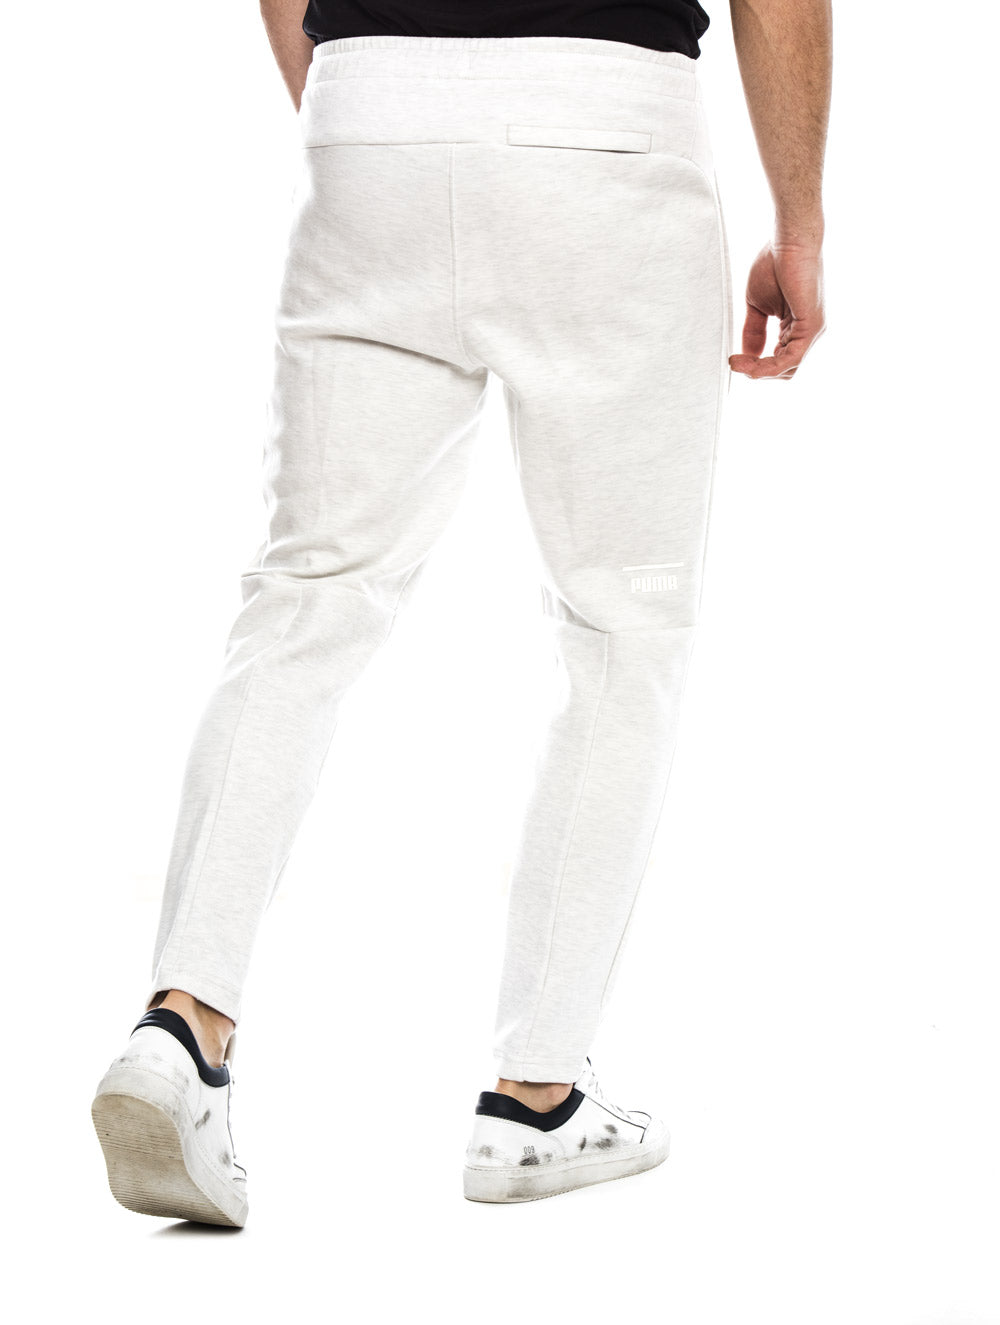 71aa2b960cd6 PACE PRIMARY PANTS PUMA IN WHITE ICE – Nohow Style